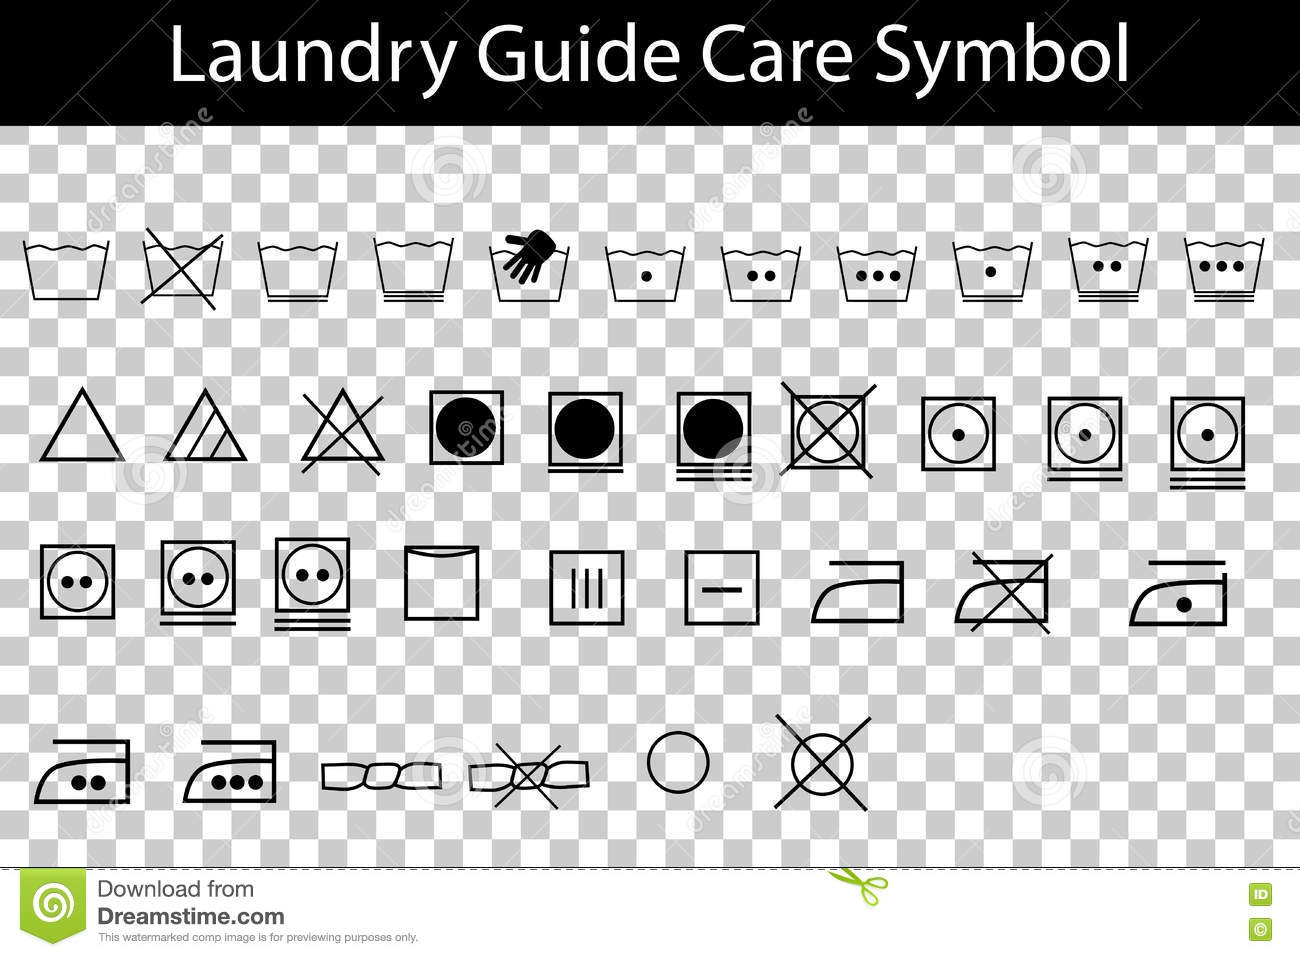 Simple laundry guide symbol at transparent effect background stock simple laundry guide symbol at transparent effect background stock image biocorpaavc Image collections